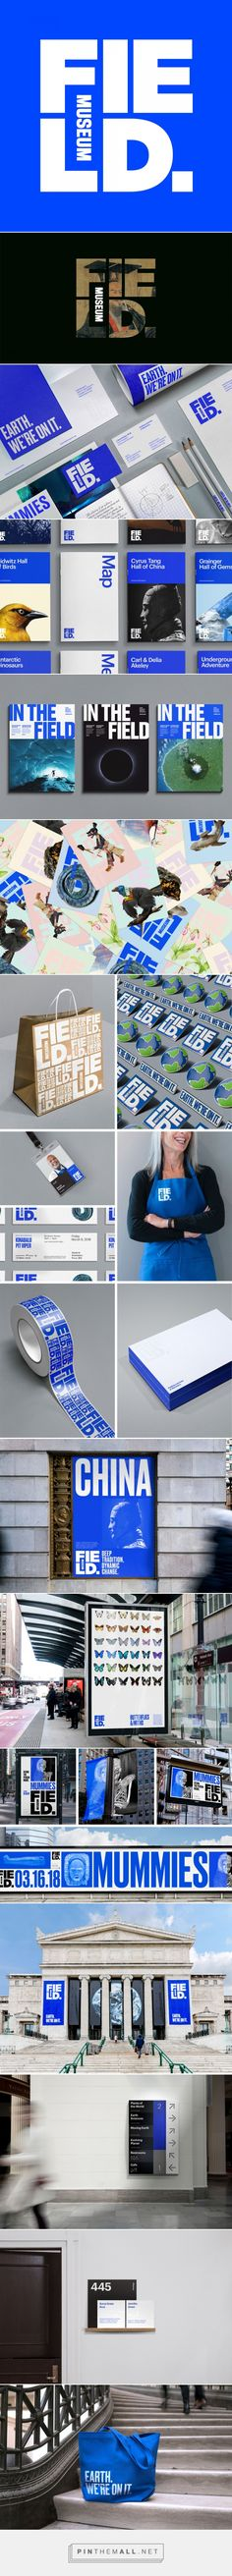 Brand New: New Logo and Identity for Field Museum by Leo Burnett Department of Design... - a grouped images picture - Pin Them All